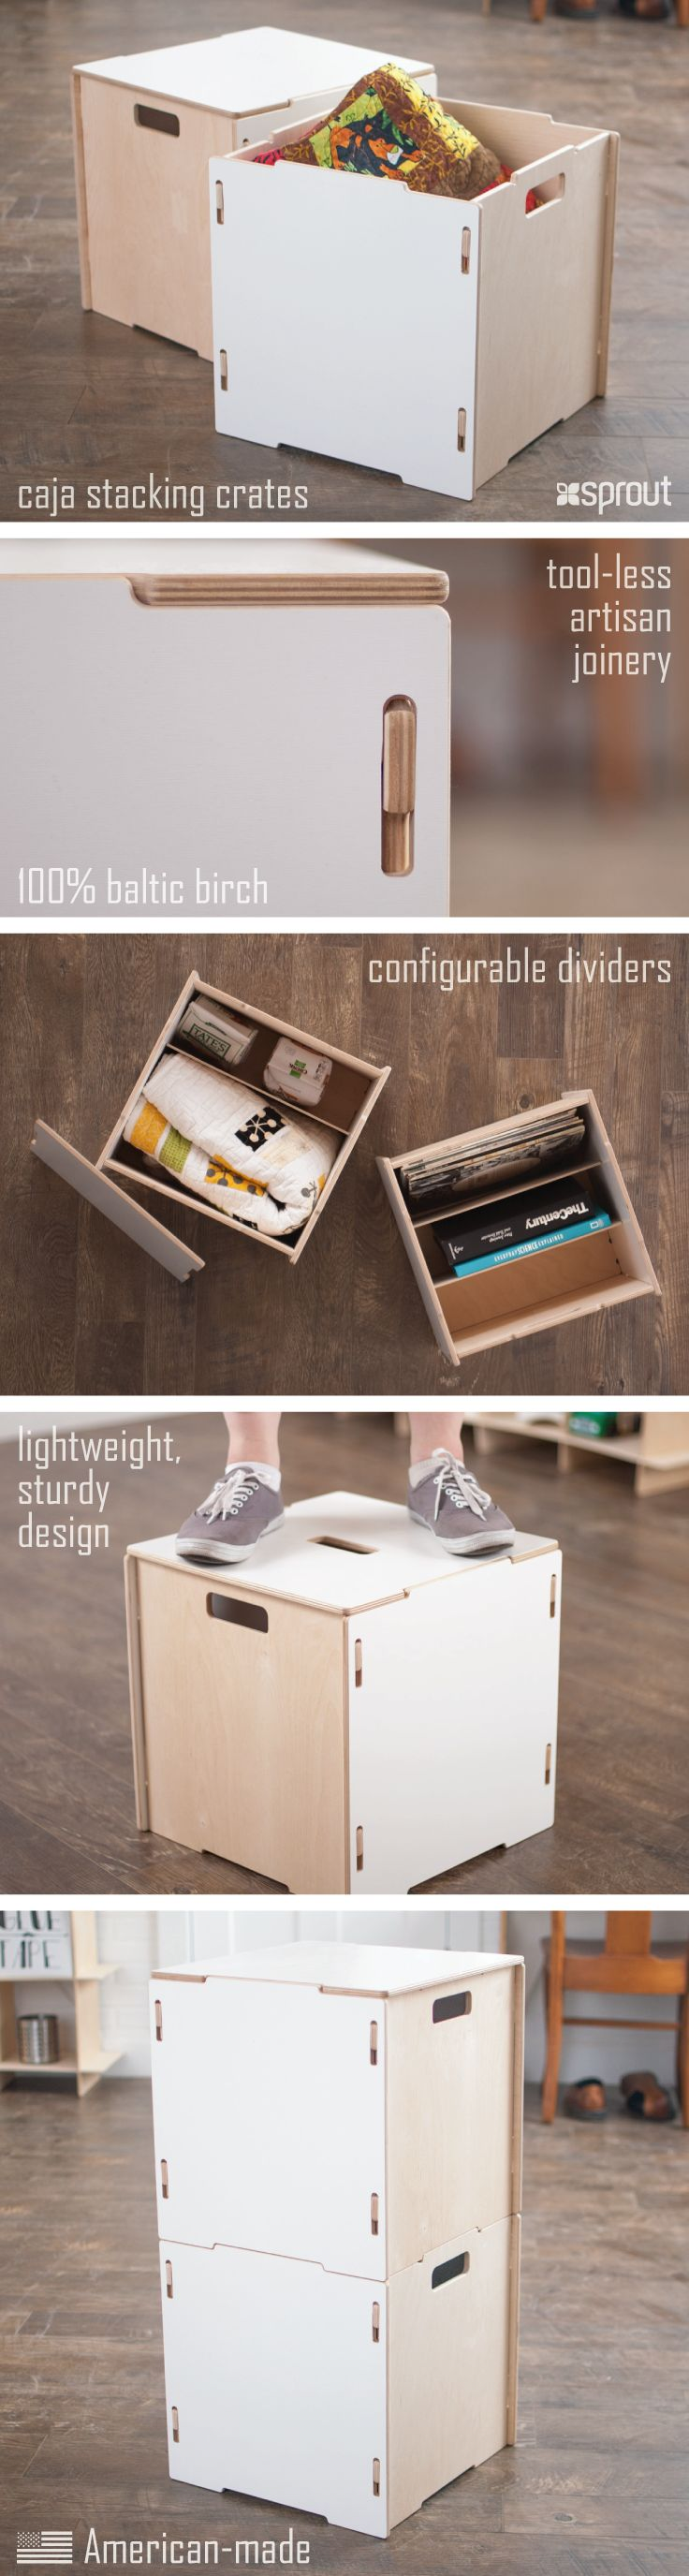 Sprout's stackable storage boxes fit perfectly with the aesthetic of a modern home. You can store anything you need to, right in the living room, without ruining the feeling of the room! These wooden crates come in multiple colors, are modular, and can fit with all of our other crates options for tons of fun organization options. Learn more about the Wooden Storage Boxes at Sprout.